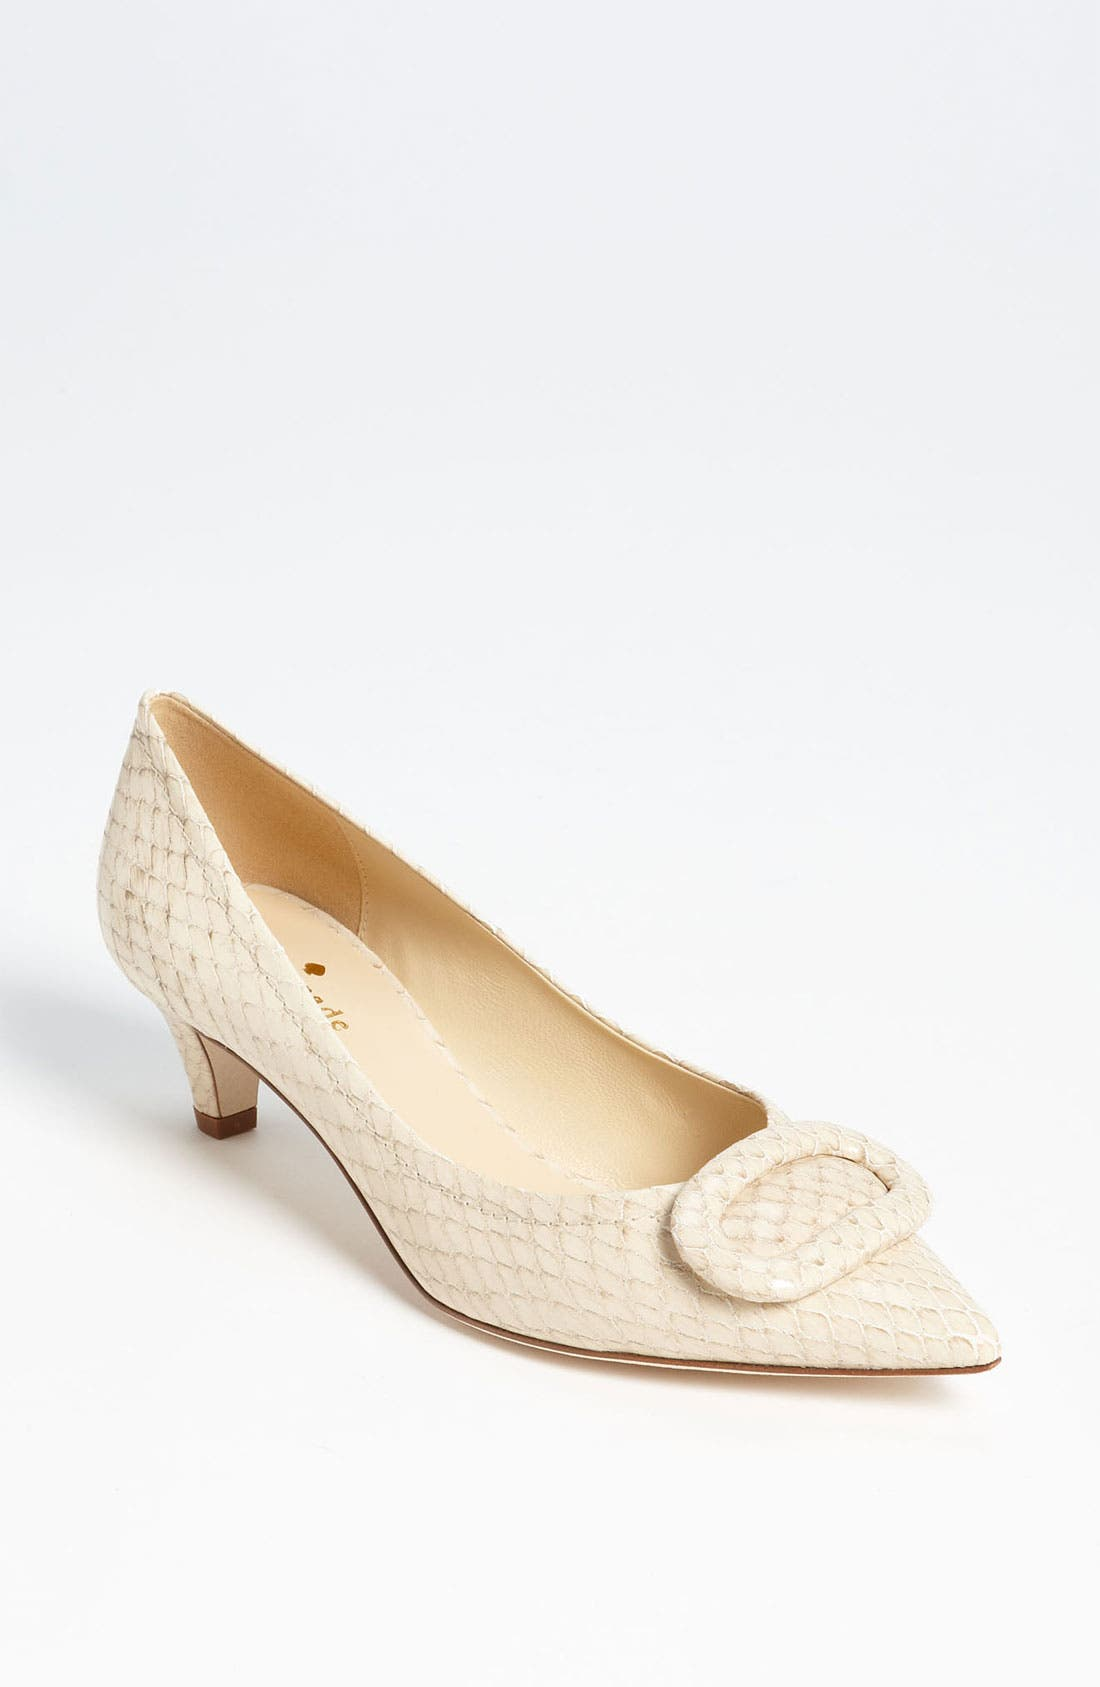 Alternate Image 1 Selected - kate spade new york 'simon' pump